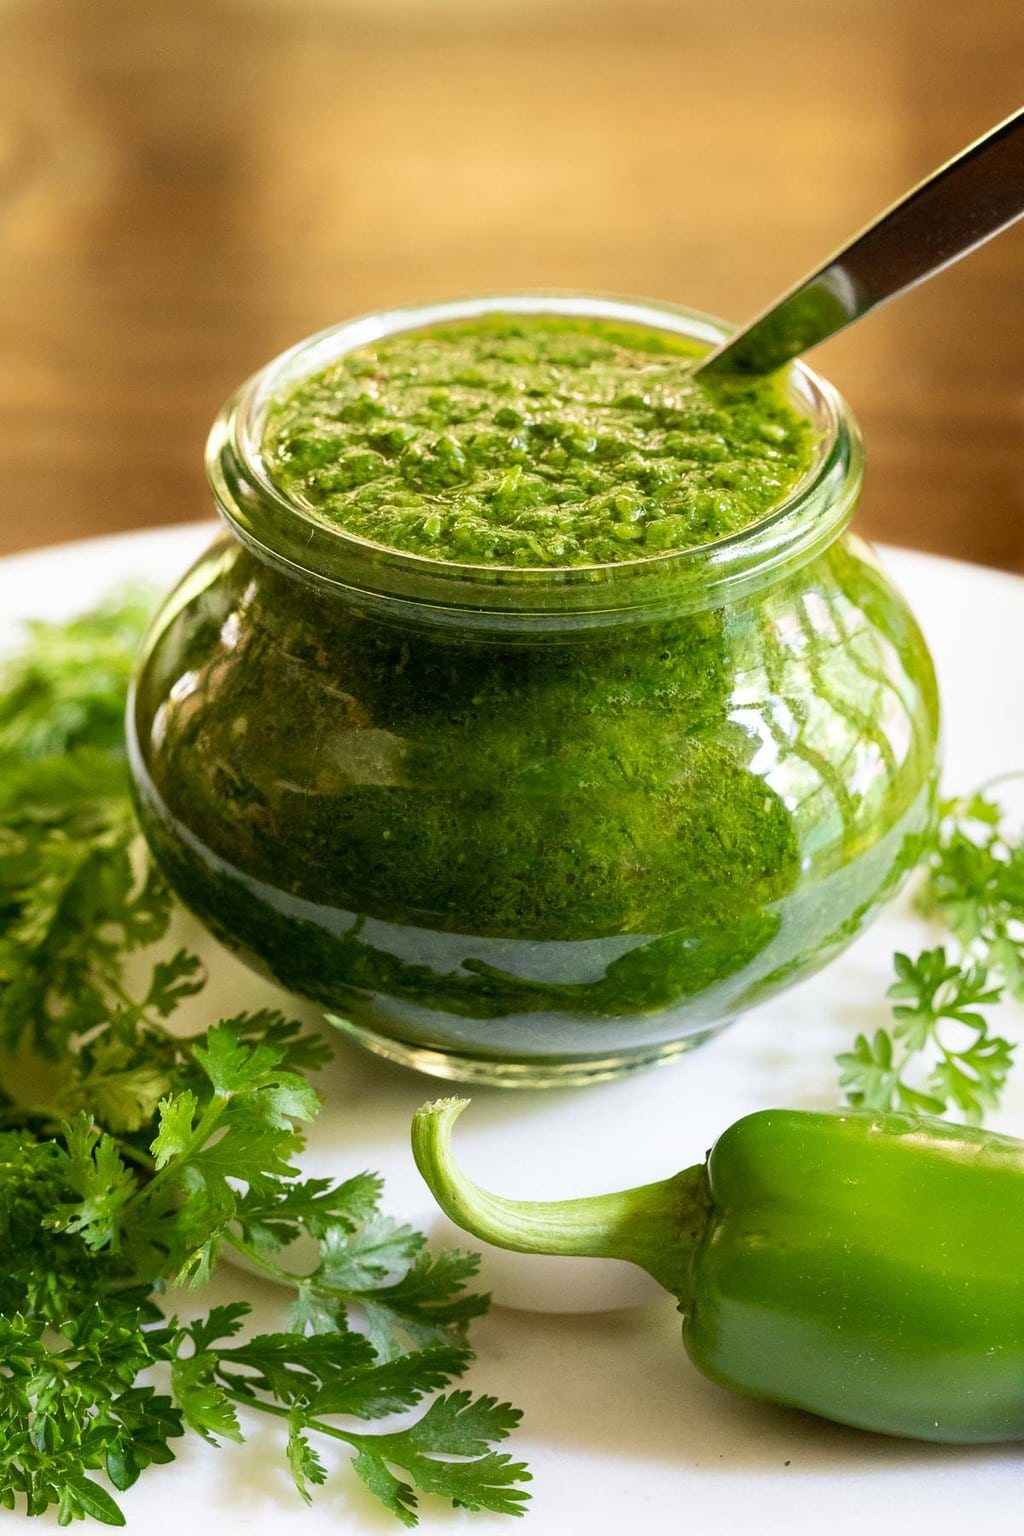 Vertical closeup photo of Middle Eastern Zhoug sauce in a glass Weck jar surrounded by cilantro and peppers.